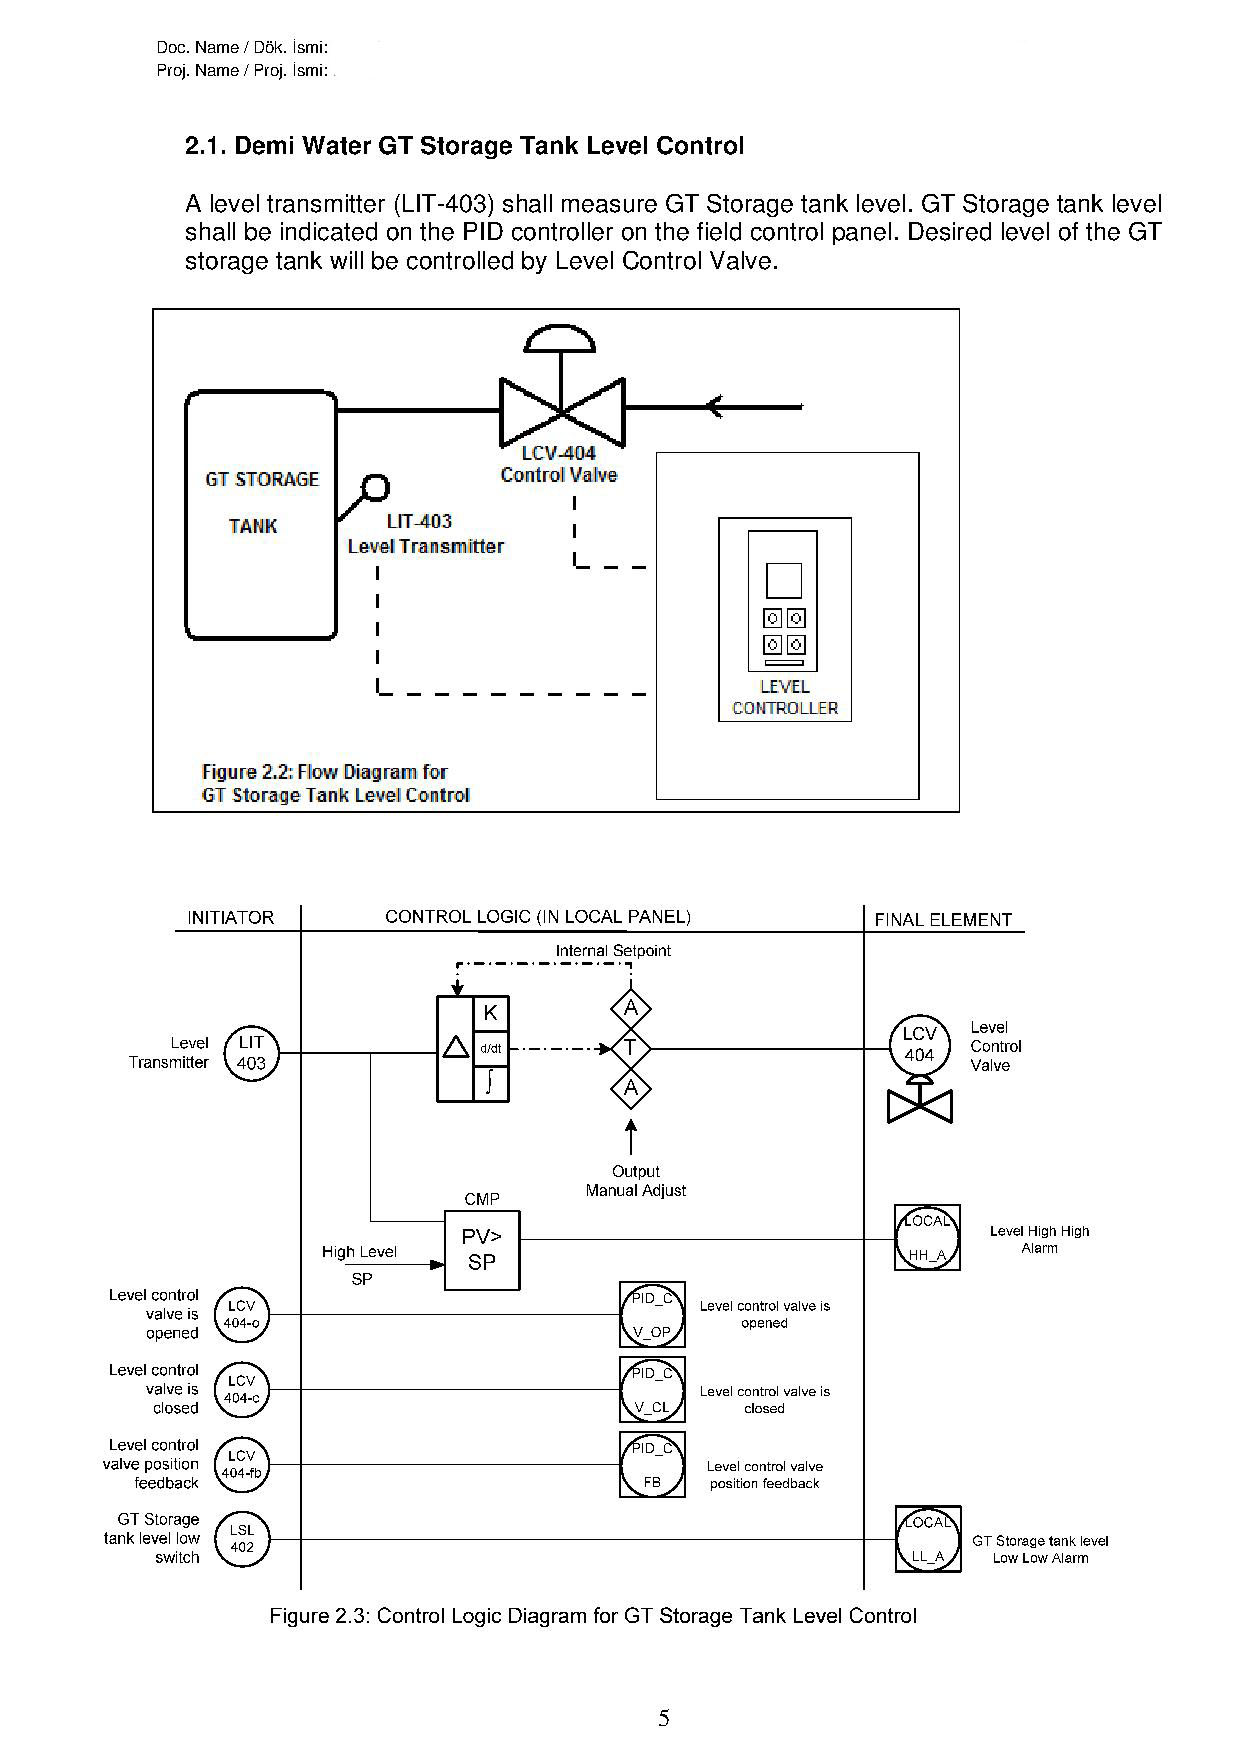 Sectech Industrial Co Logic Control Diagram Pageid0403imga006